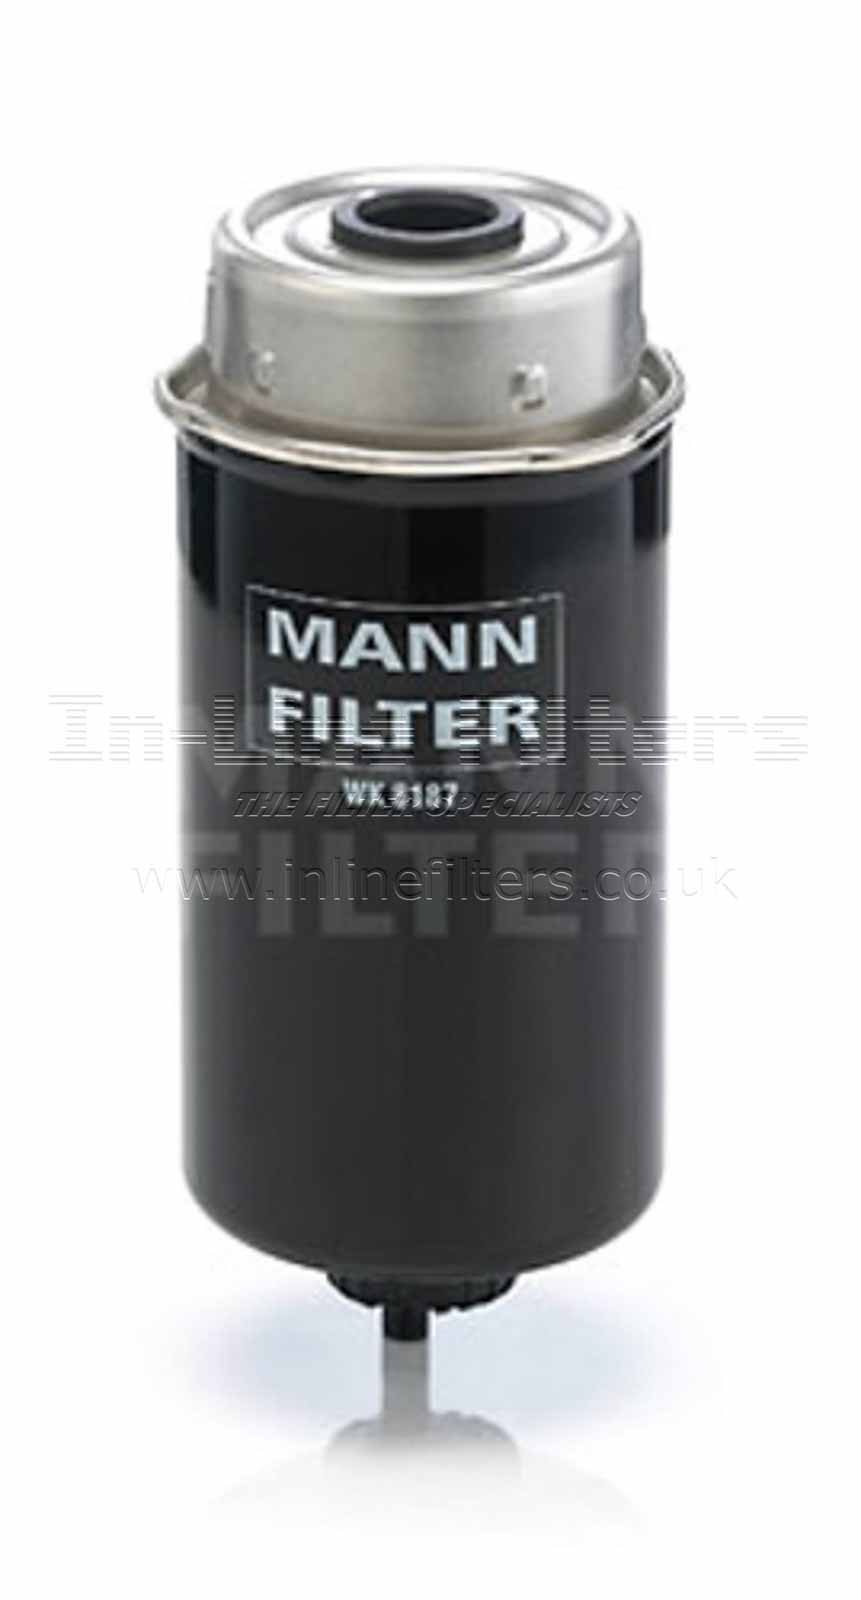 FMH-WK8187 FILTER-Fuel(Brand Specific-Mann WK8187) - Click Image to Close